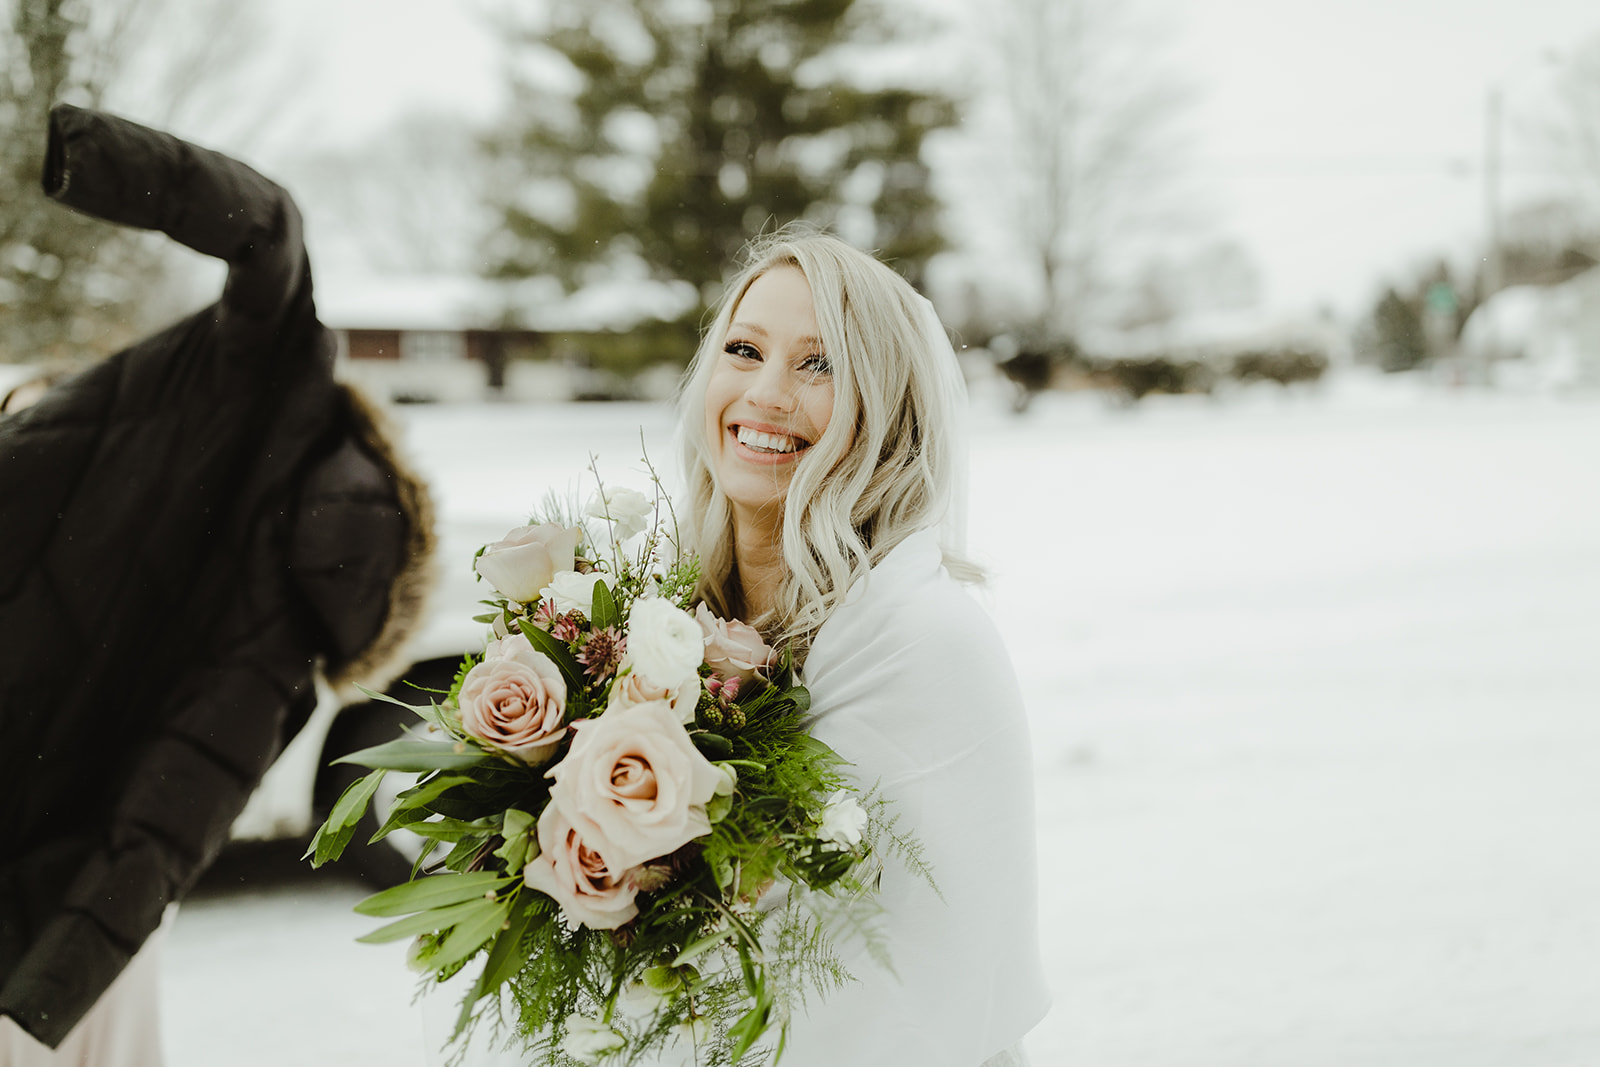 A bride smiling after her Grand Rapids, Michigan wedding